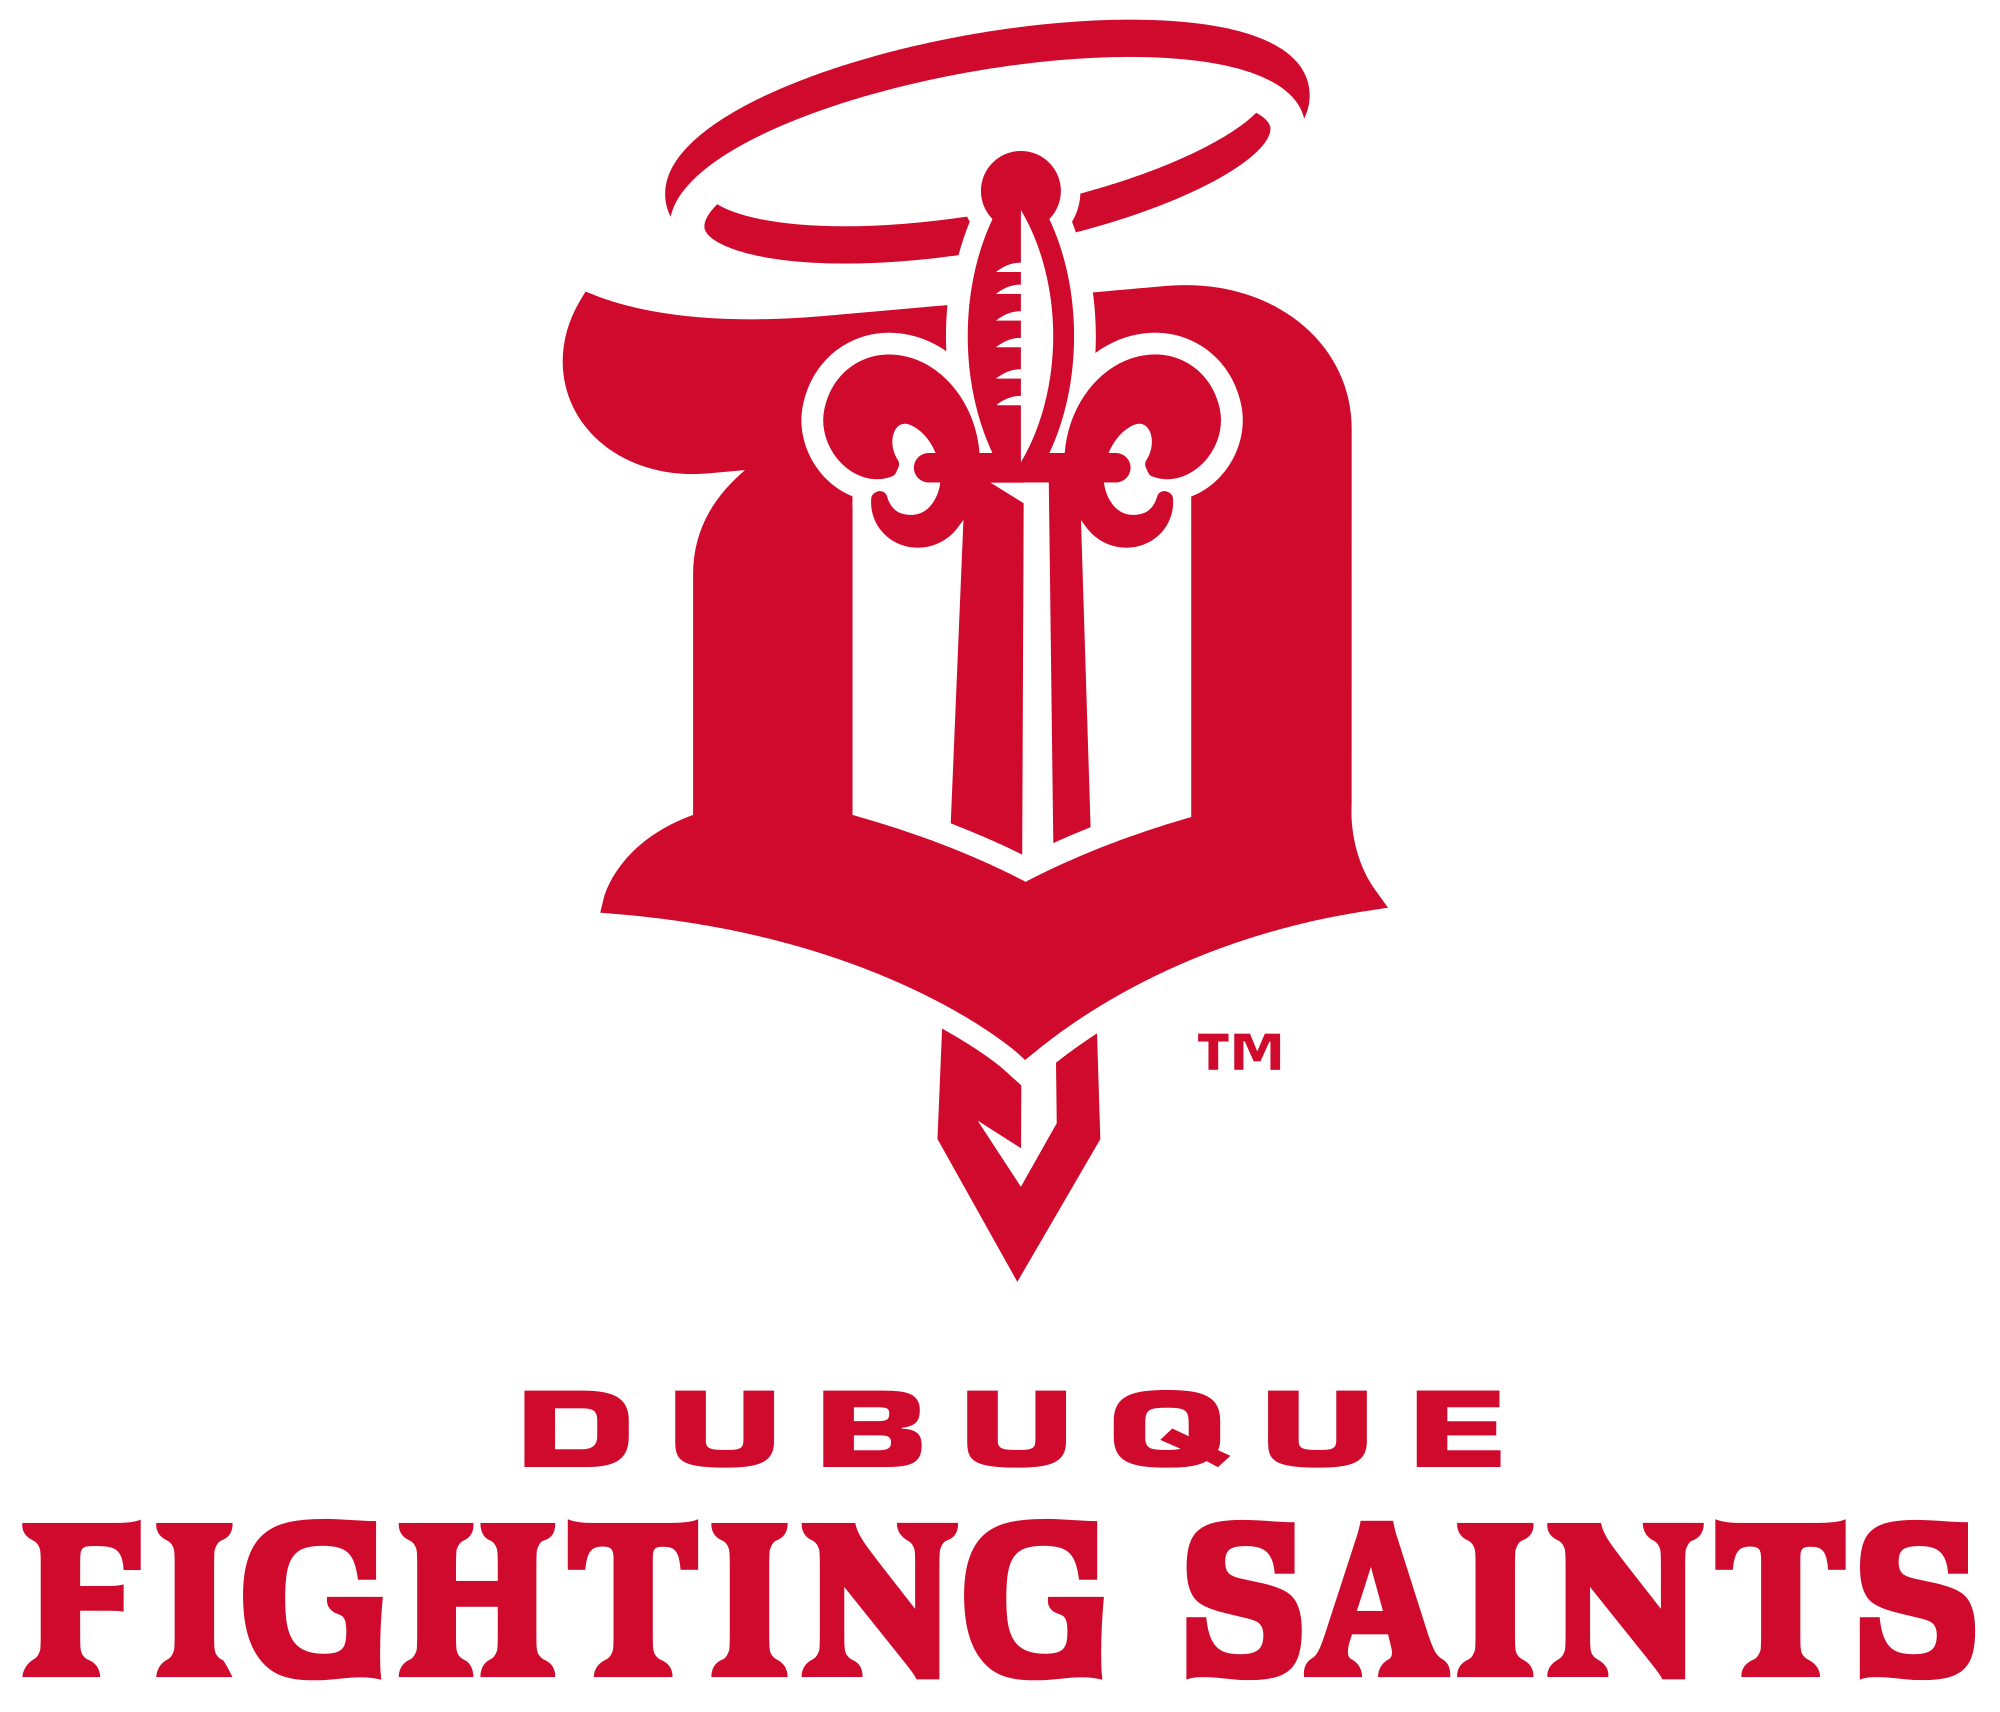 Pin sports logopng on pinterest - Dubuque Fighting Saints Sport Logos Pinterest Sports Logos Hockey Logos And Sports Clubs